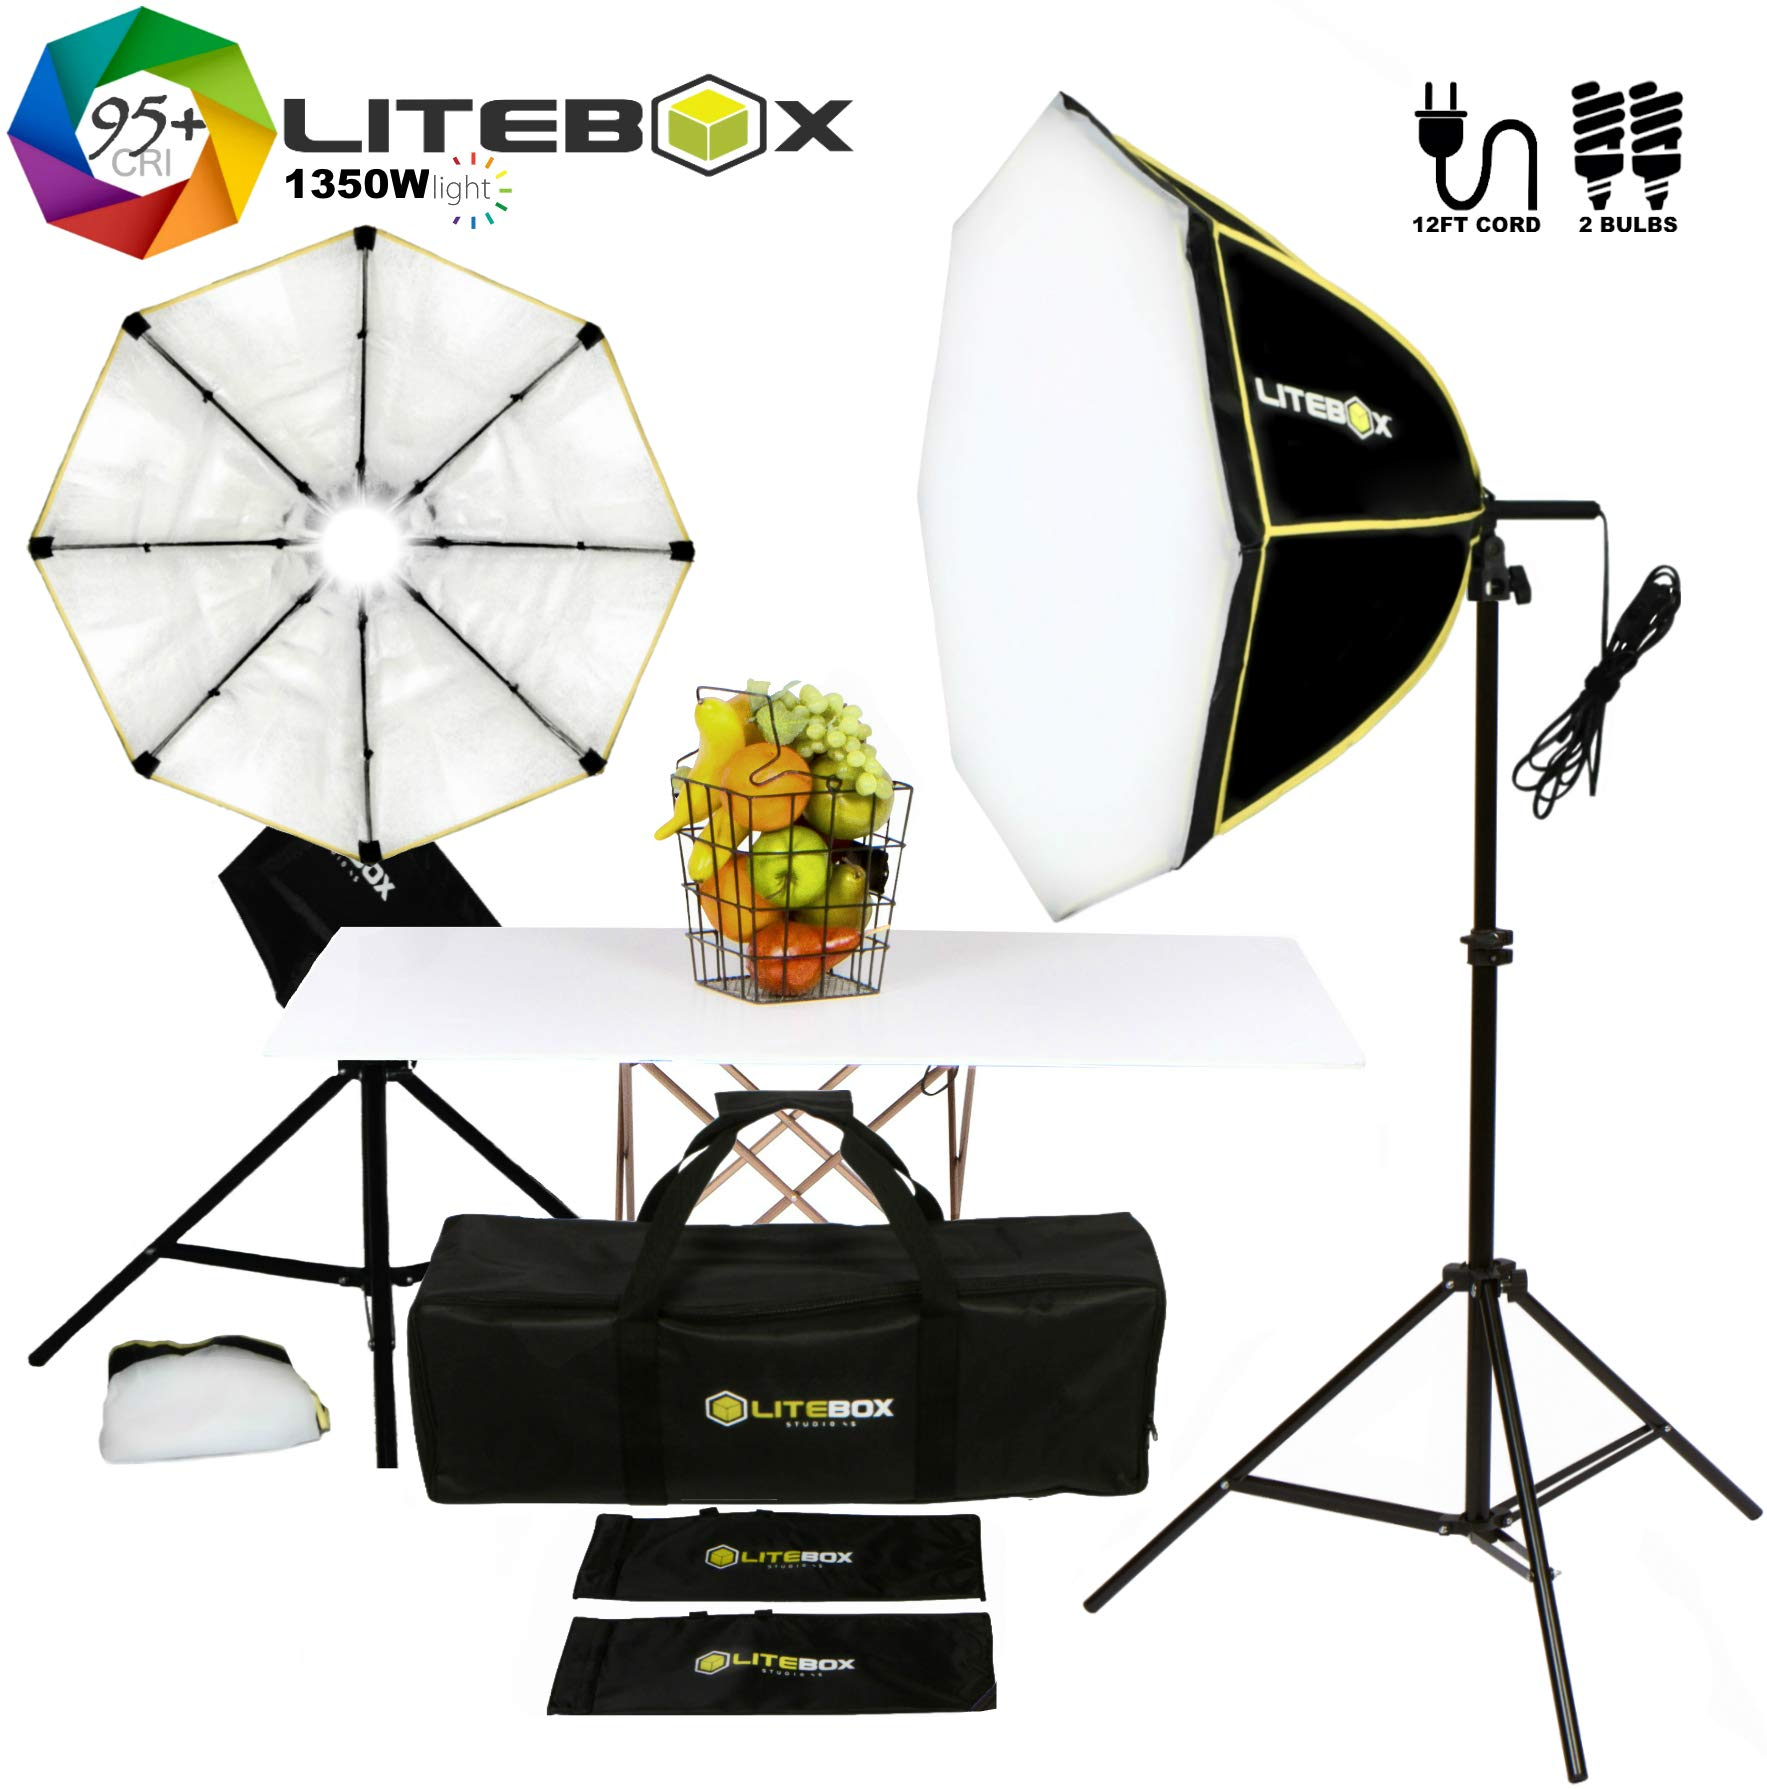 LITEBOX Photography Lighting Kit in a Box | Dual Softbox Lights & Stands for Professional Photo Video Lighting | 5500K (95+ CRI) by LiteBox